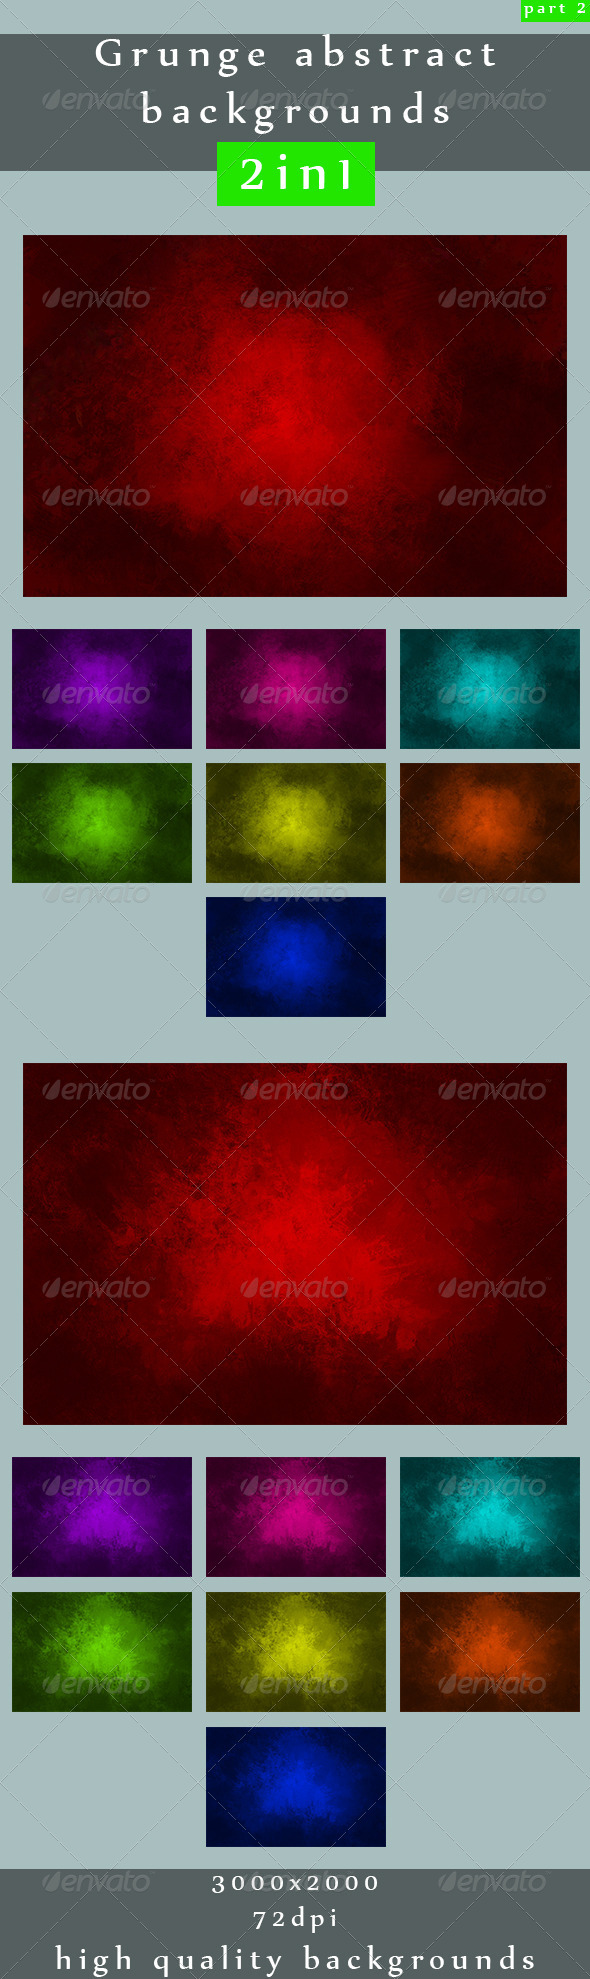 GraphicRiver Grunge abstract backgrounds 2in1 2 5064538